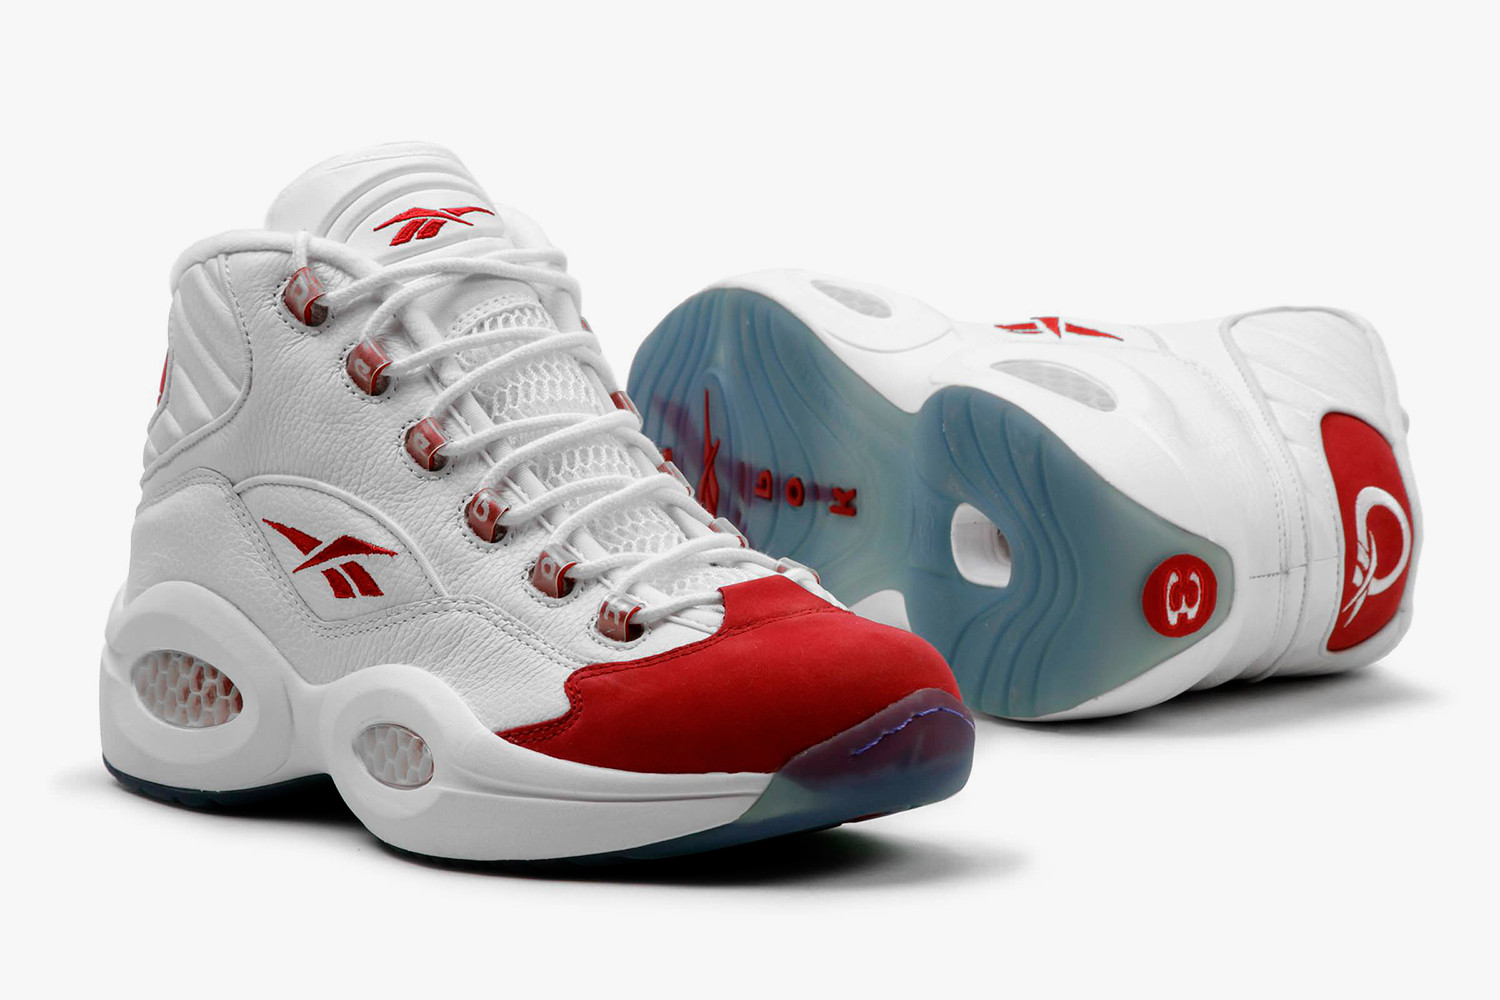 on sale b2b77 682f7 By 2013 Reebok no longer produced performance basketball shoes, a historic  downfall for a company that at one time was Nike s number one competitor.